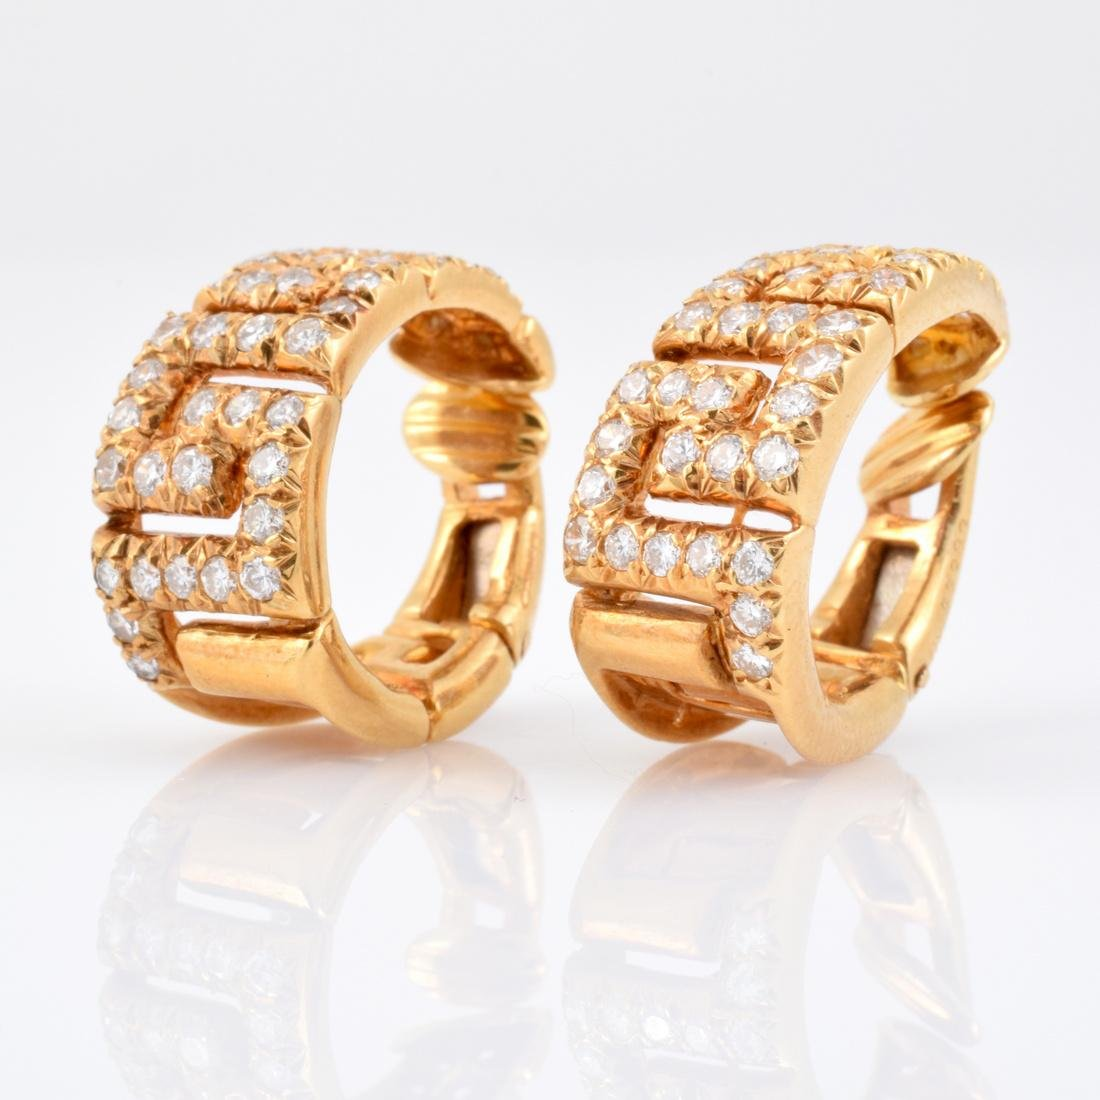 Van Cleef & Arpels 18K Gold & Diamond Earrings